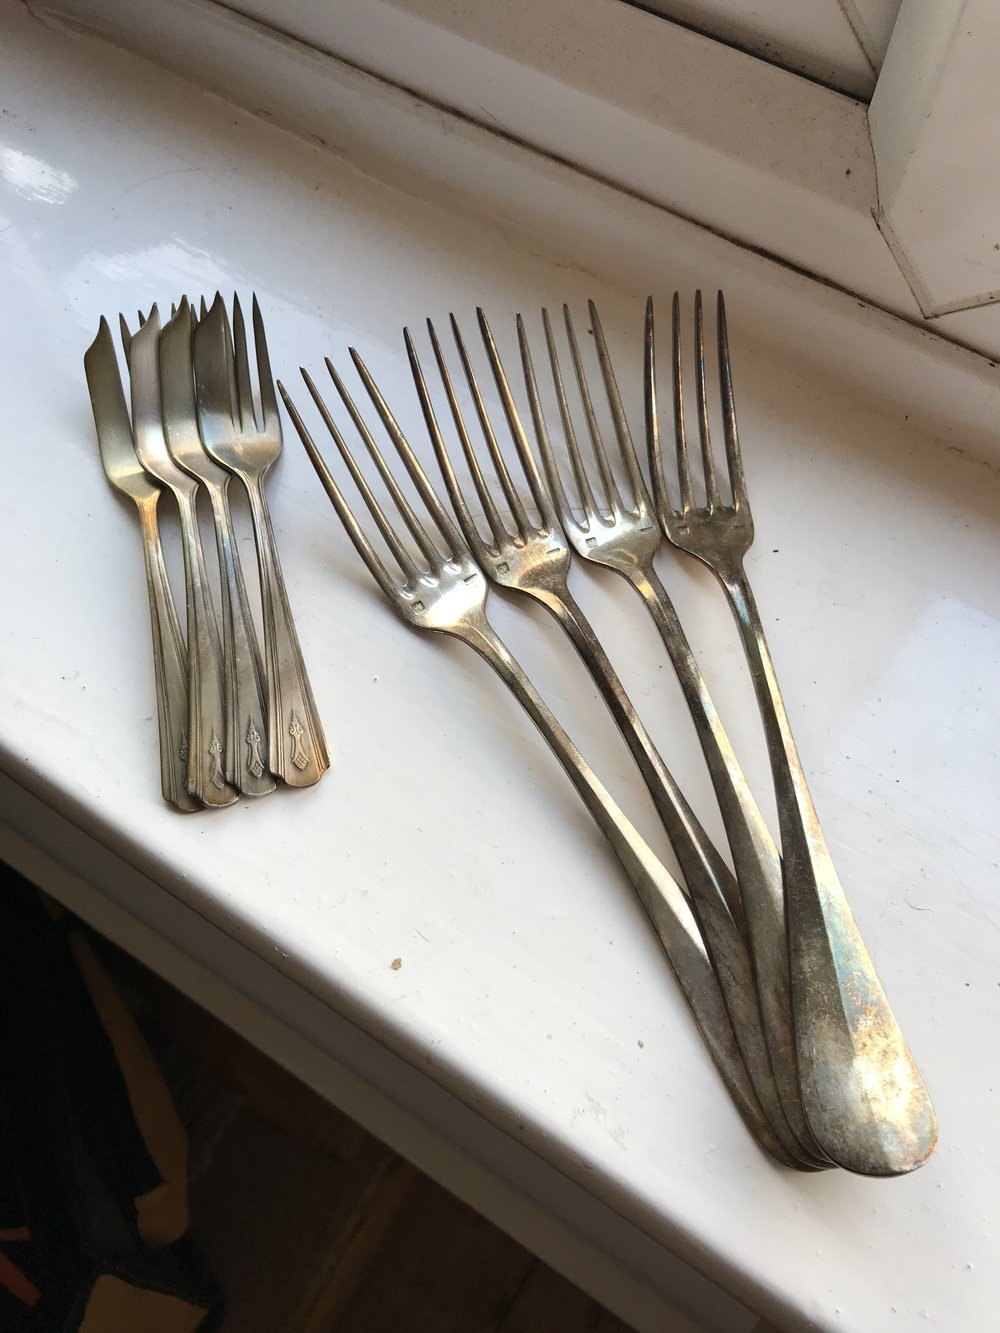 Silver plated forks for fancy dinning.